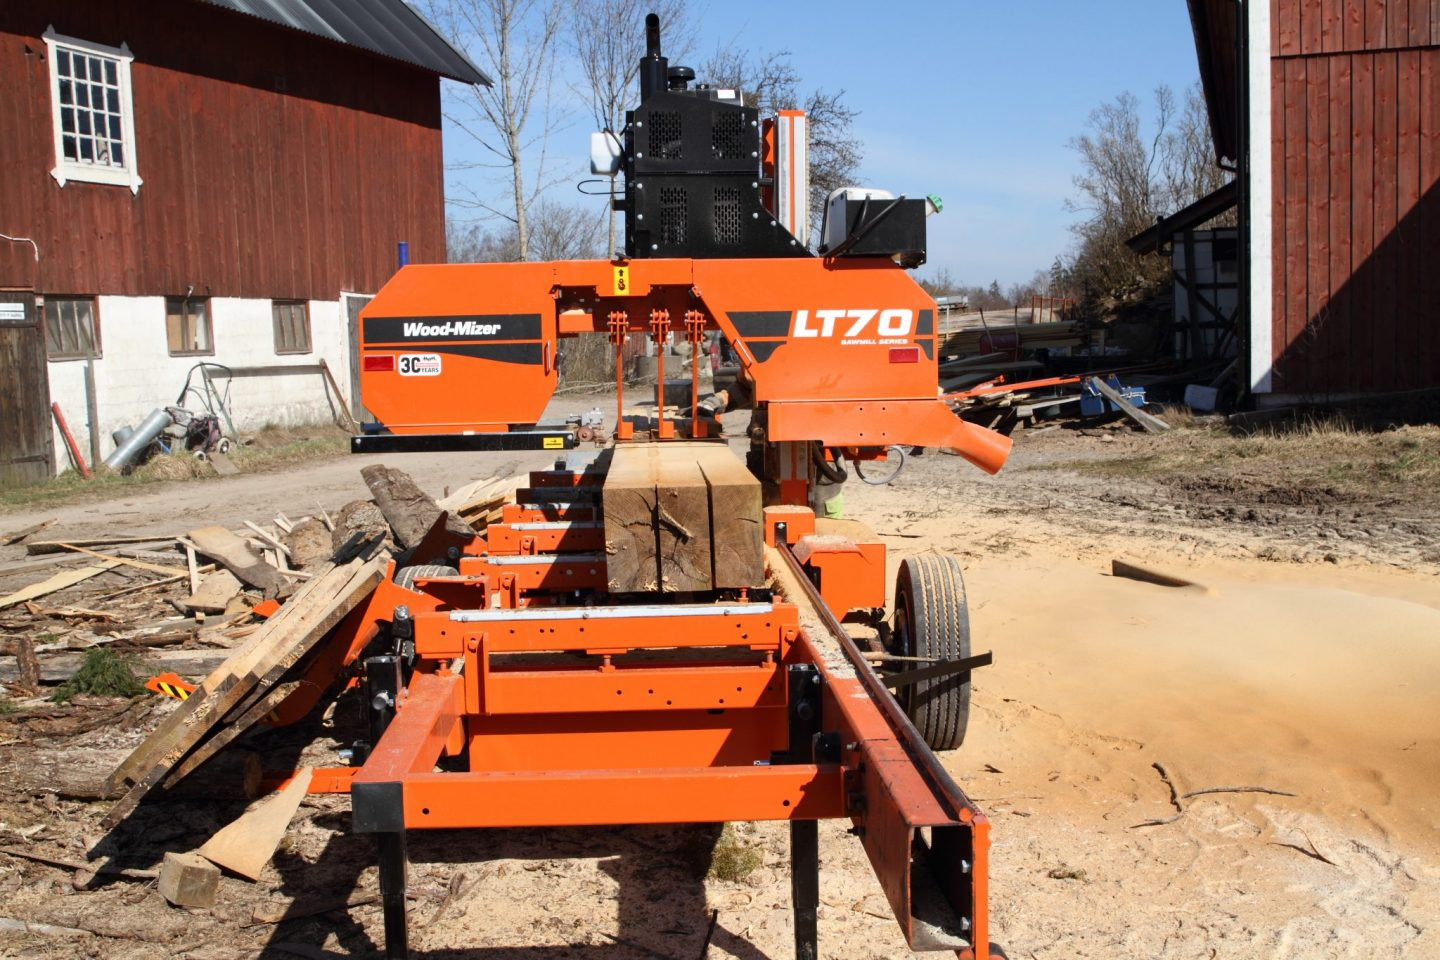 Woodmizer LT70 portable sawmill processing hard wood